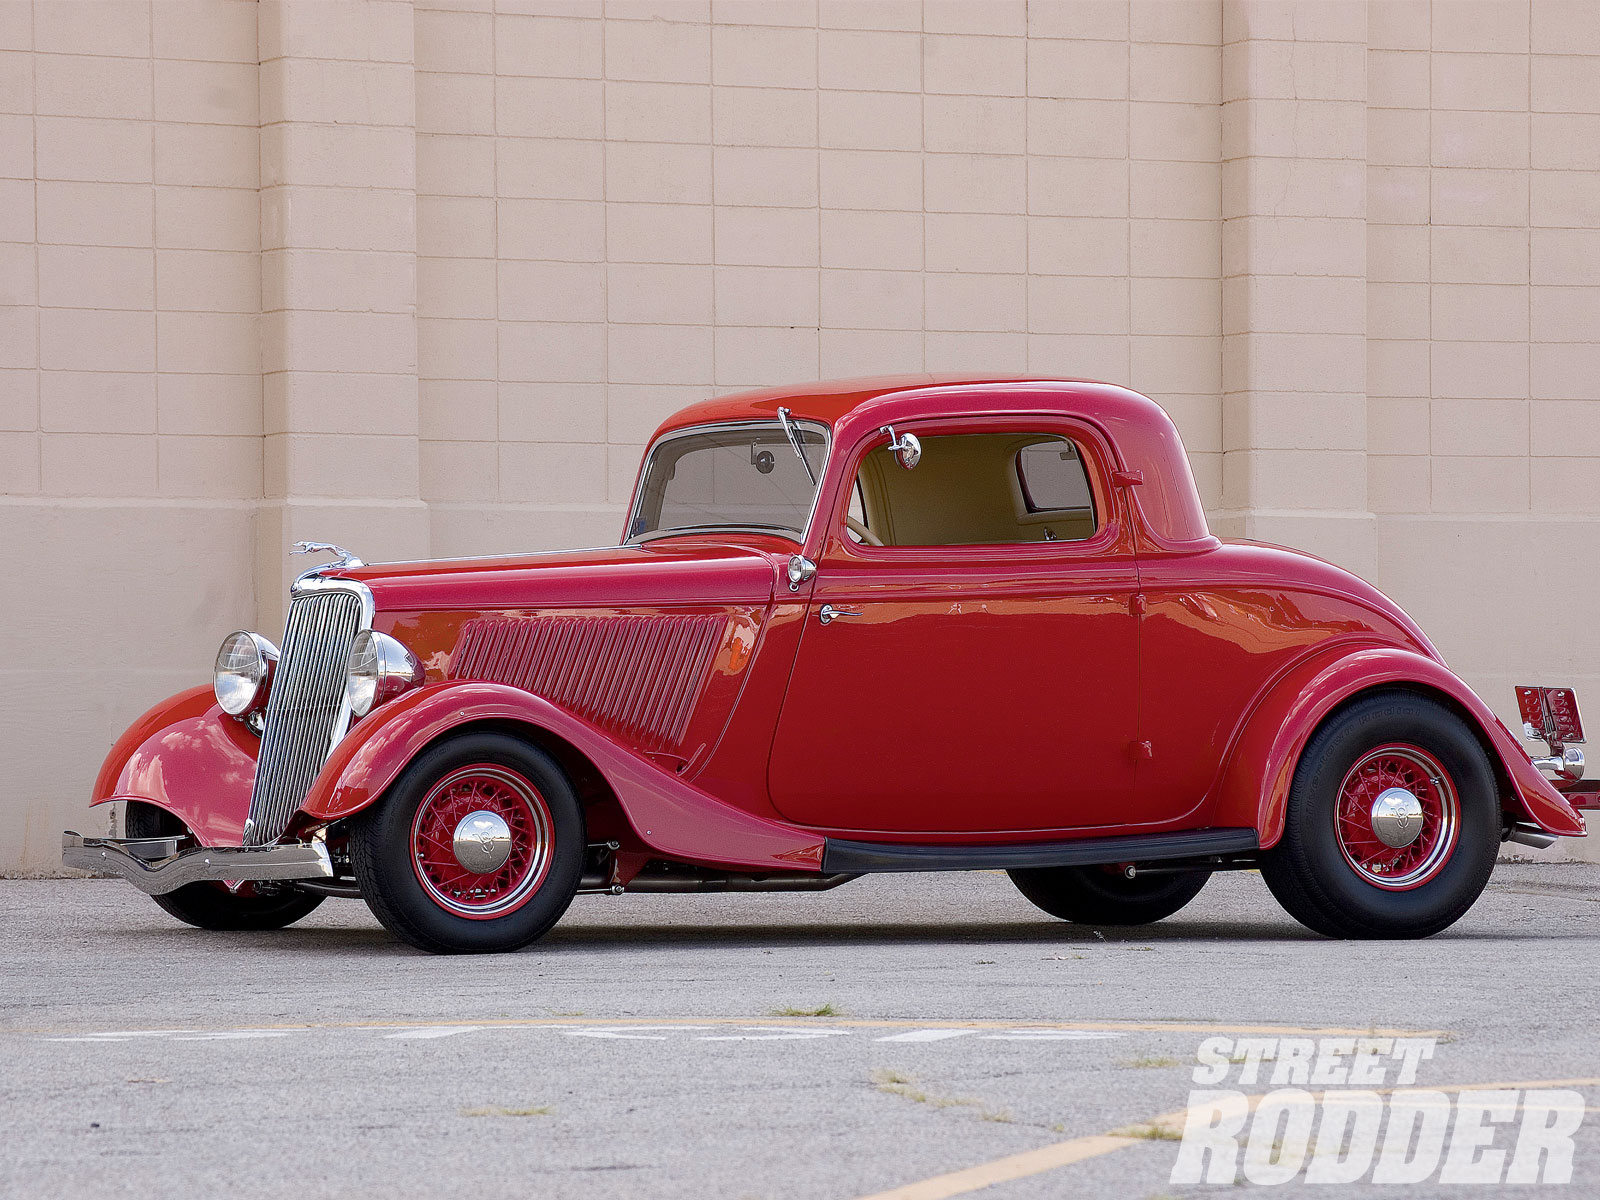 hight resolution of 1005sr 02 o 1934 ford coupe left side